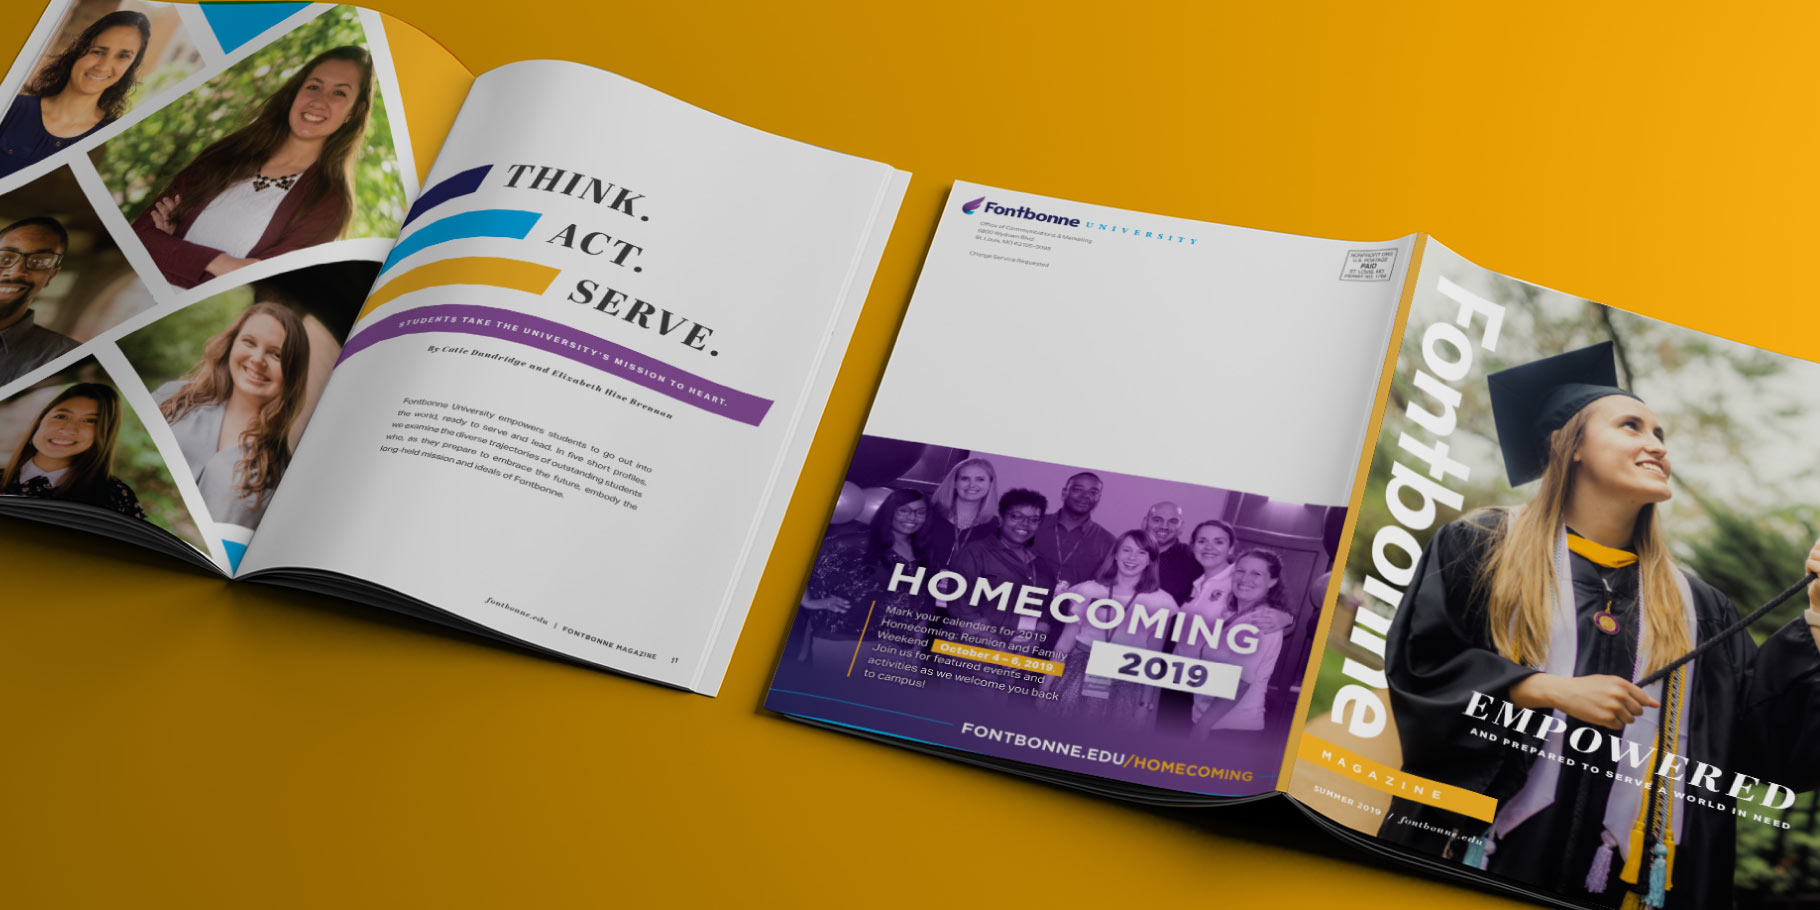 Fontbonne University magazine design cover and interior